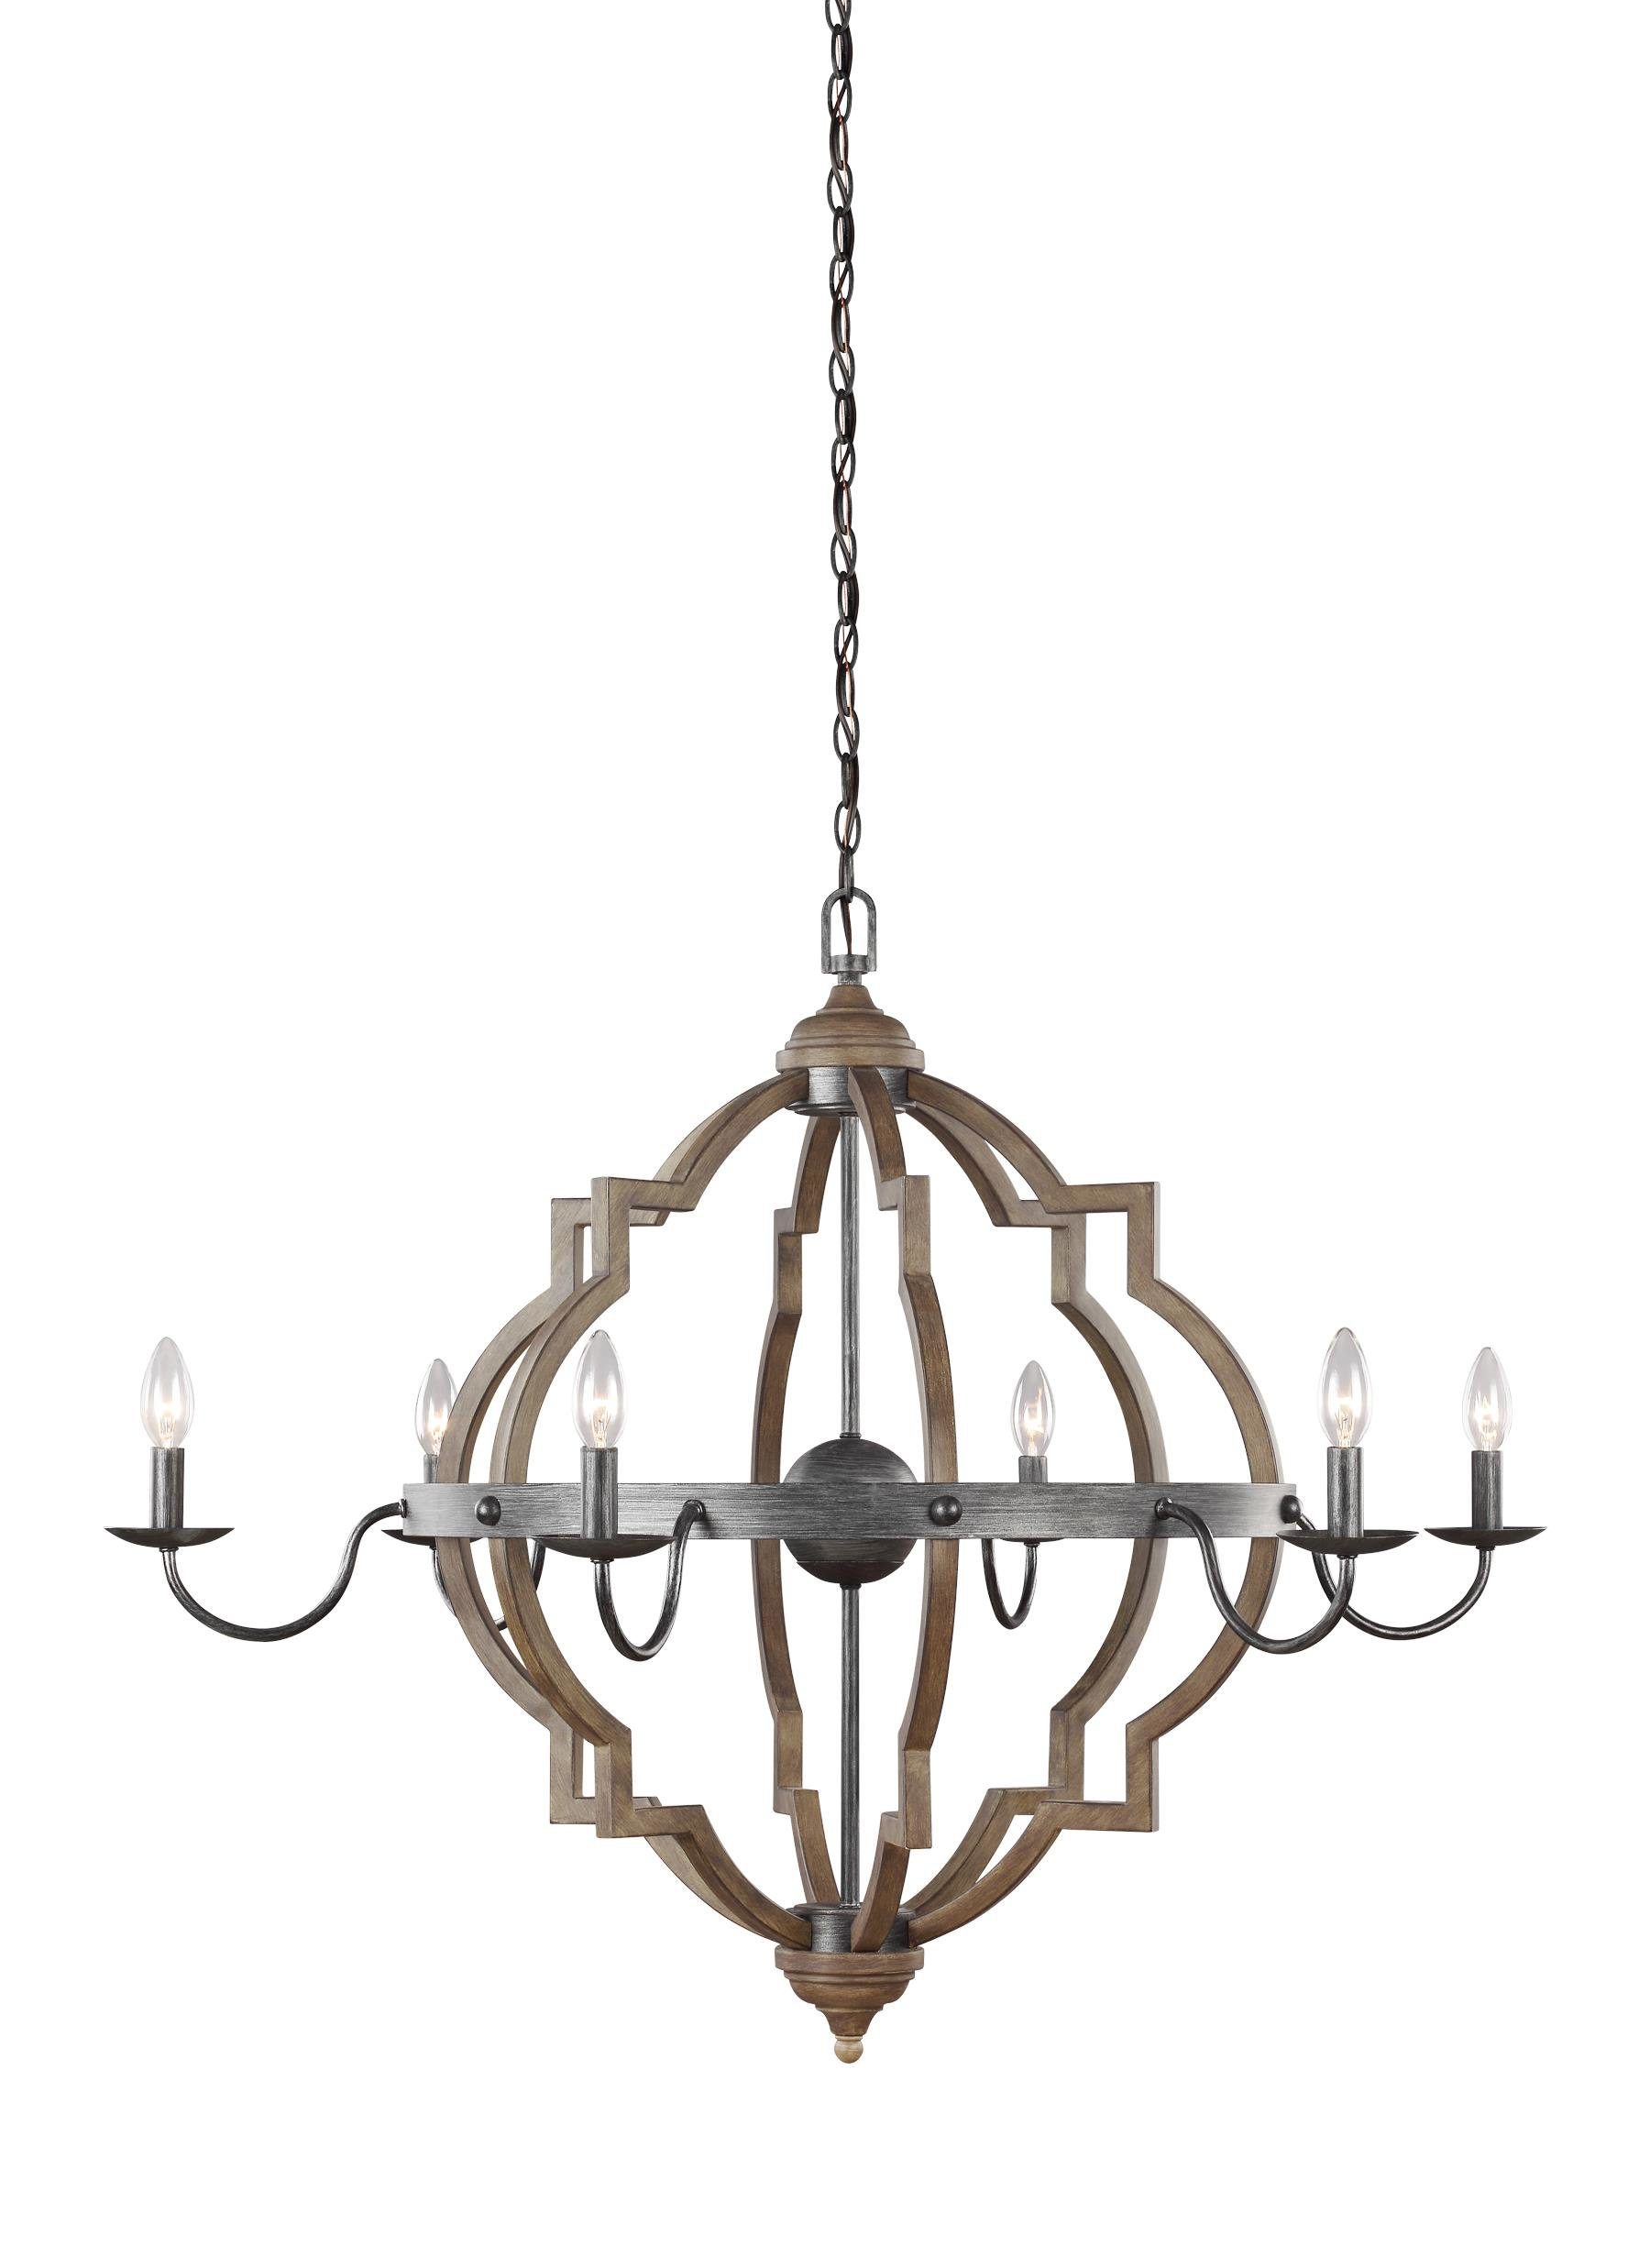 Donna 6 Light Candle Style Chandelier Intended For Shaylee 6 Light Candle Style Chandeliers (Photo 6 of 30)